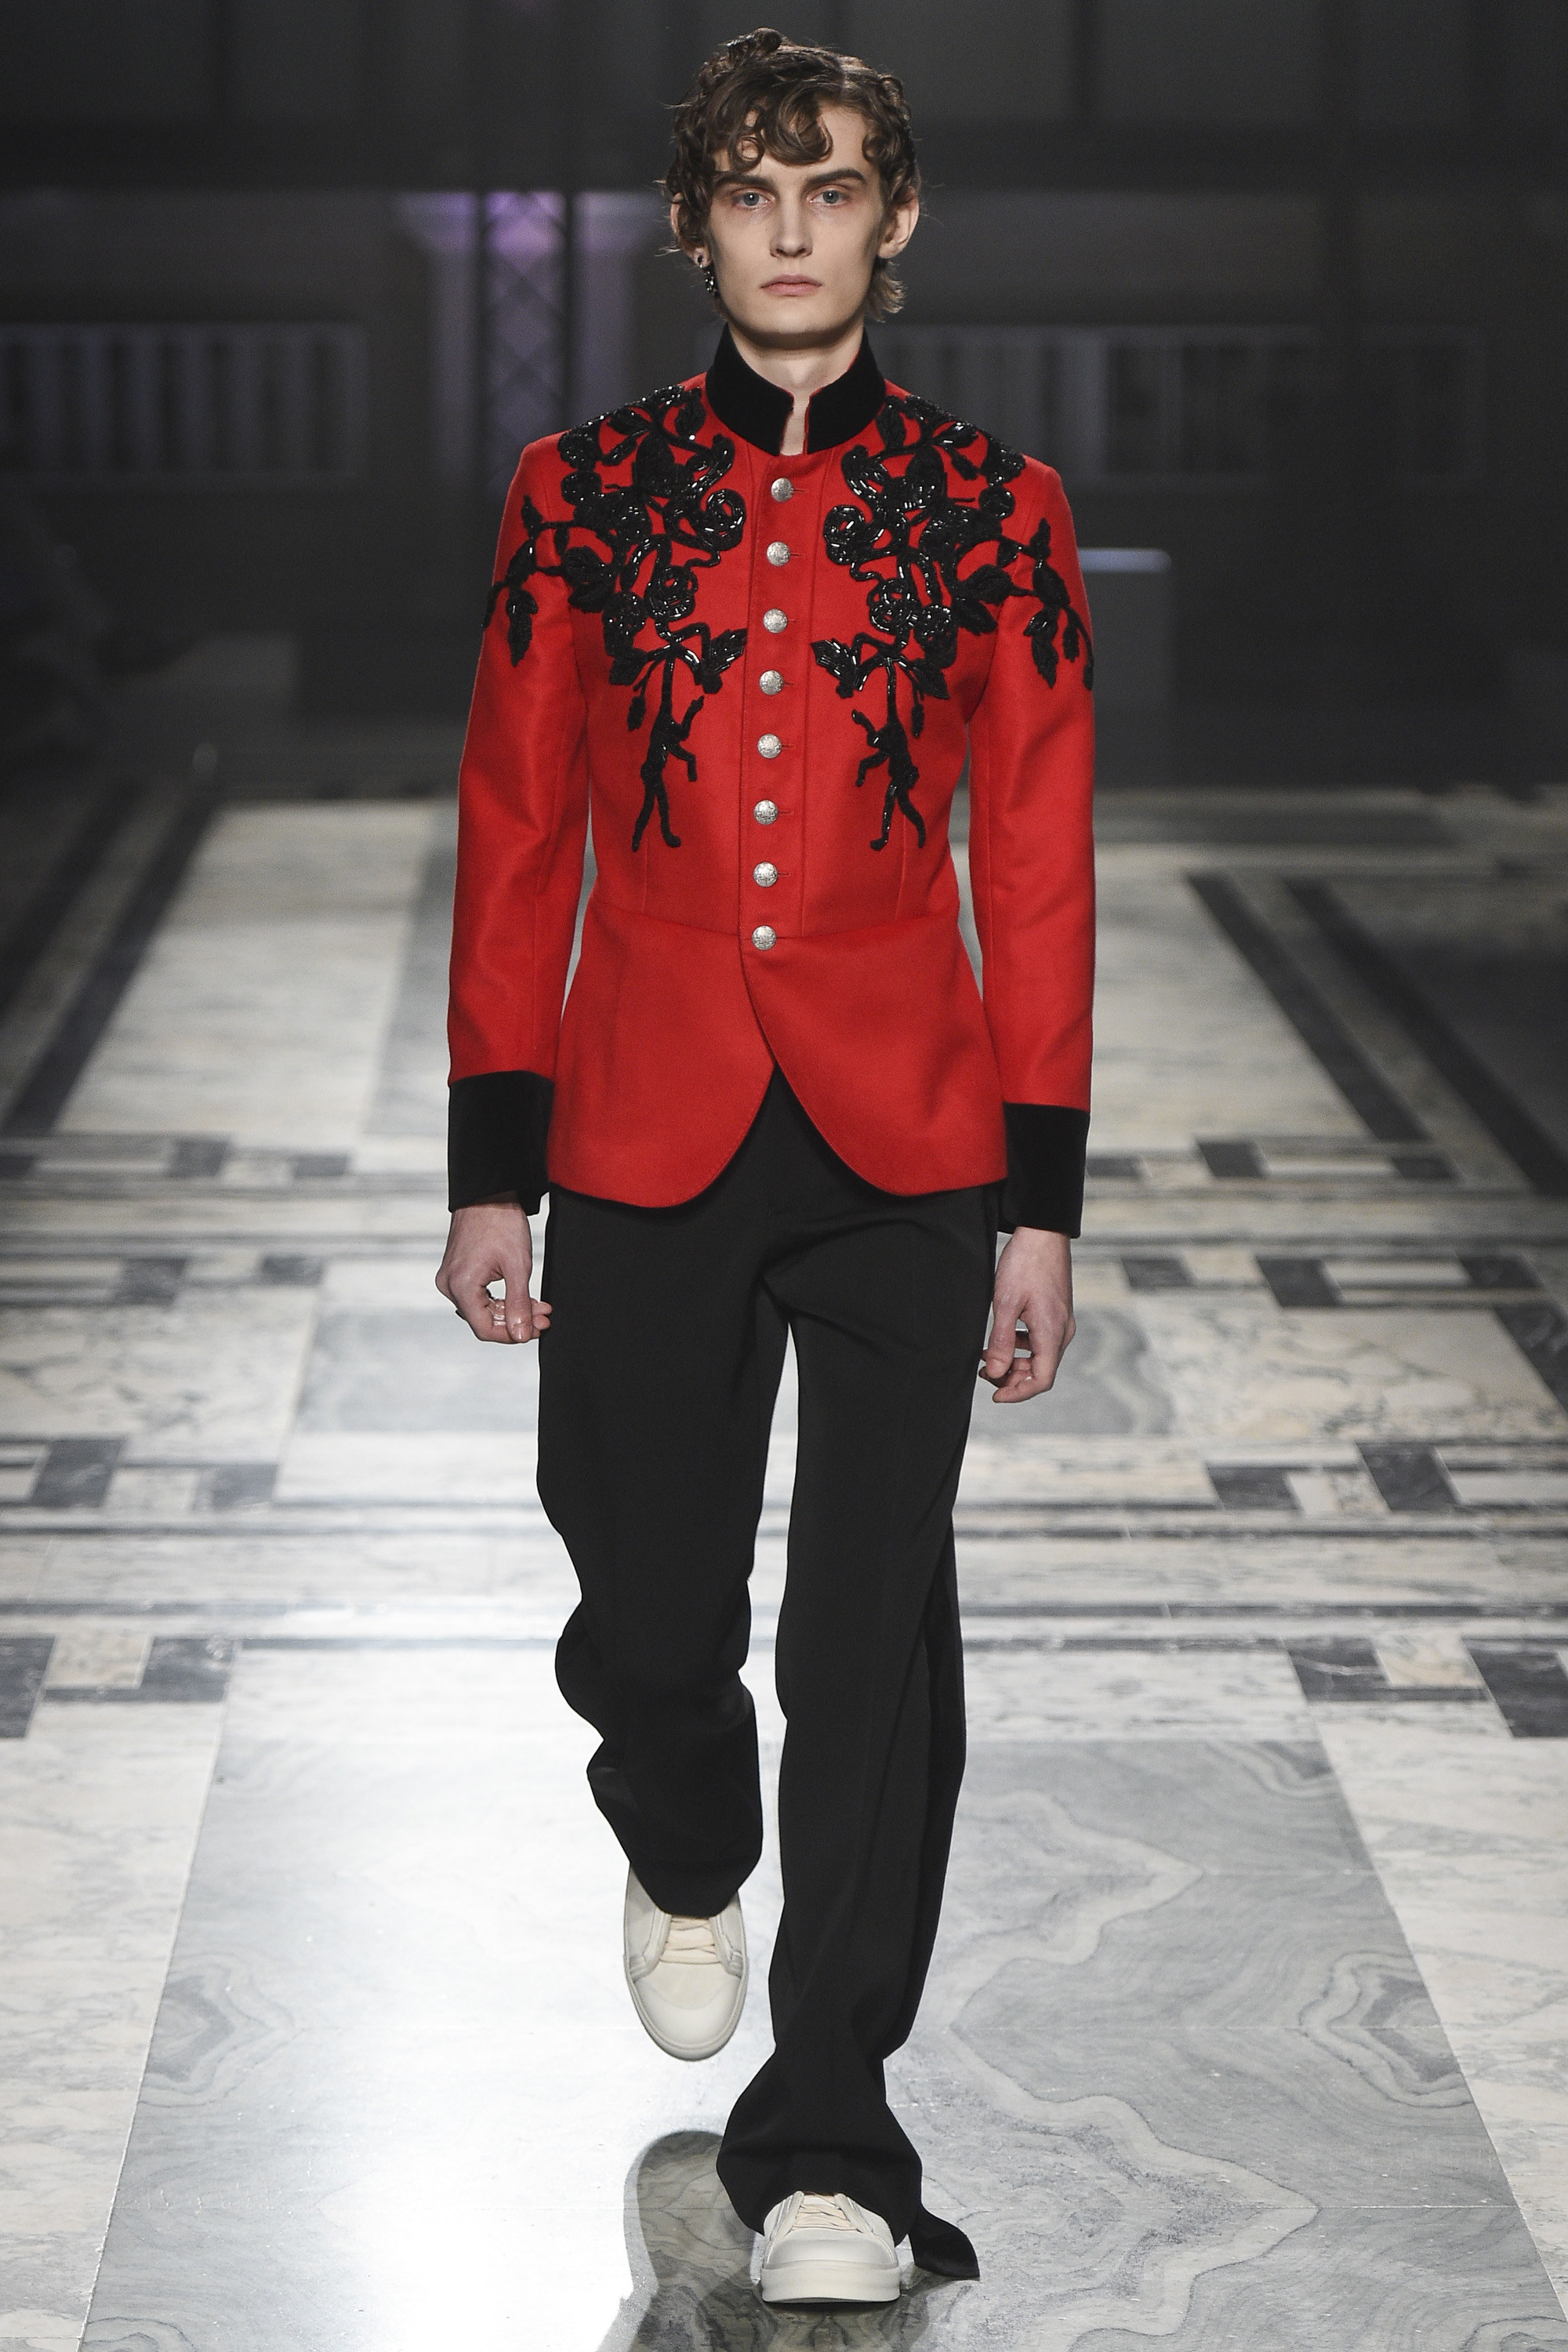 alexander mcqueen, fashion show, london collection, fashion blogger, blog de moda, alex cursino, moda sem censure, review, digital influencer,  (10)